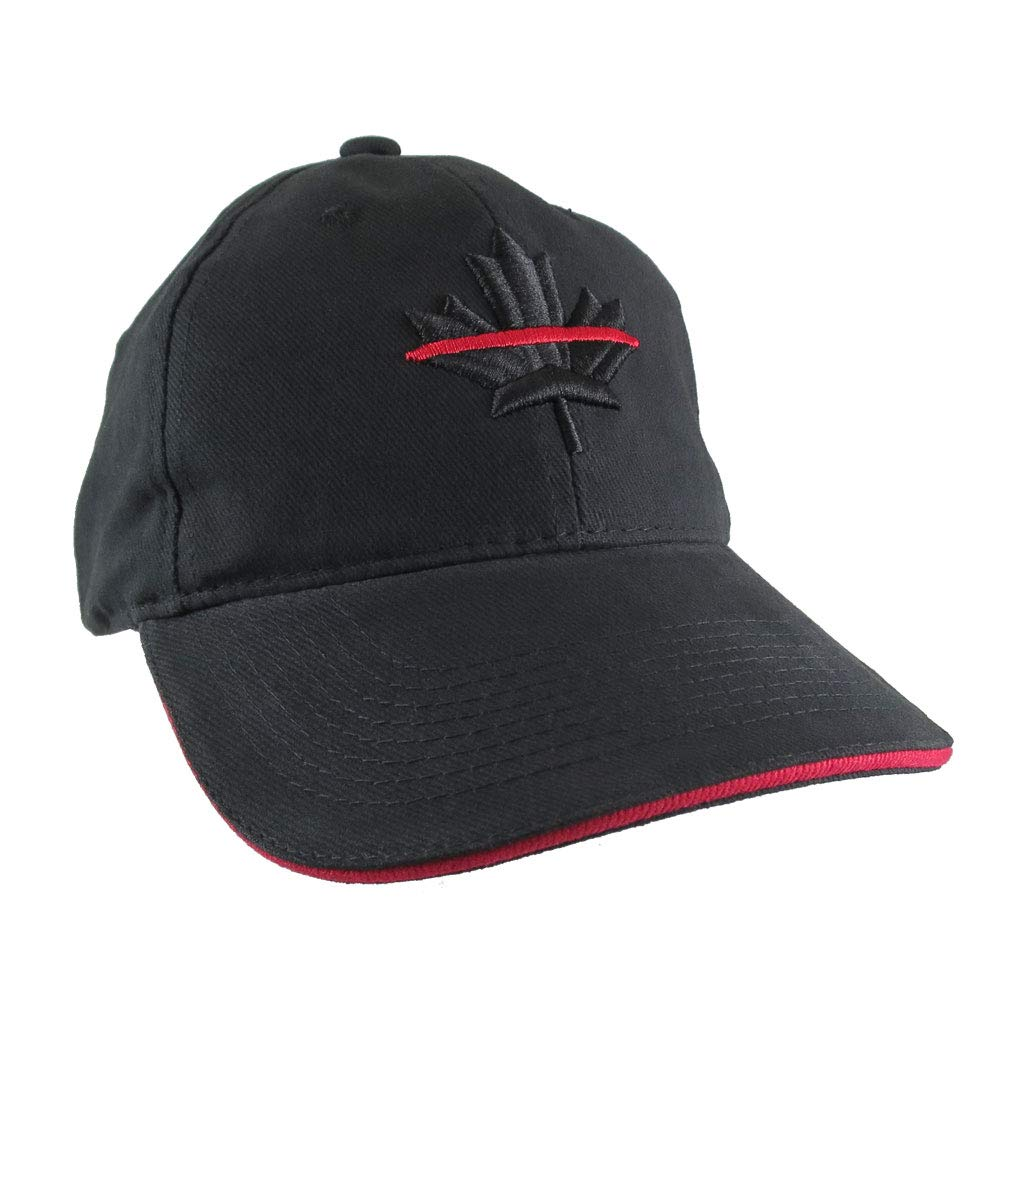 A Canadian Thin Red Line Firefighters Symbolic Maple Leaf 3D Embroidery Adjustable Black and Red Trimmed Structured Baseball Cap + Option